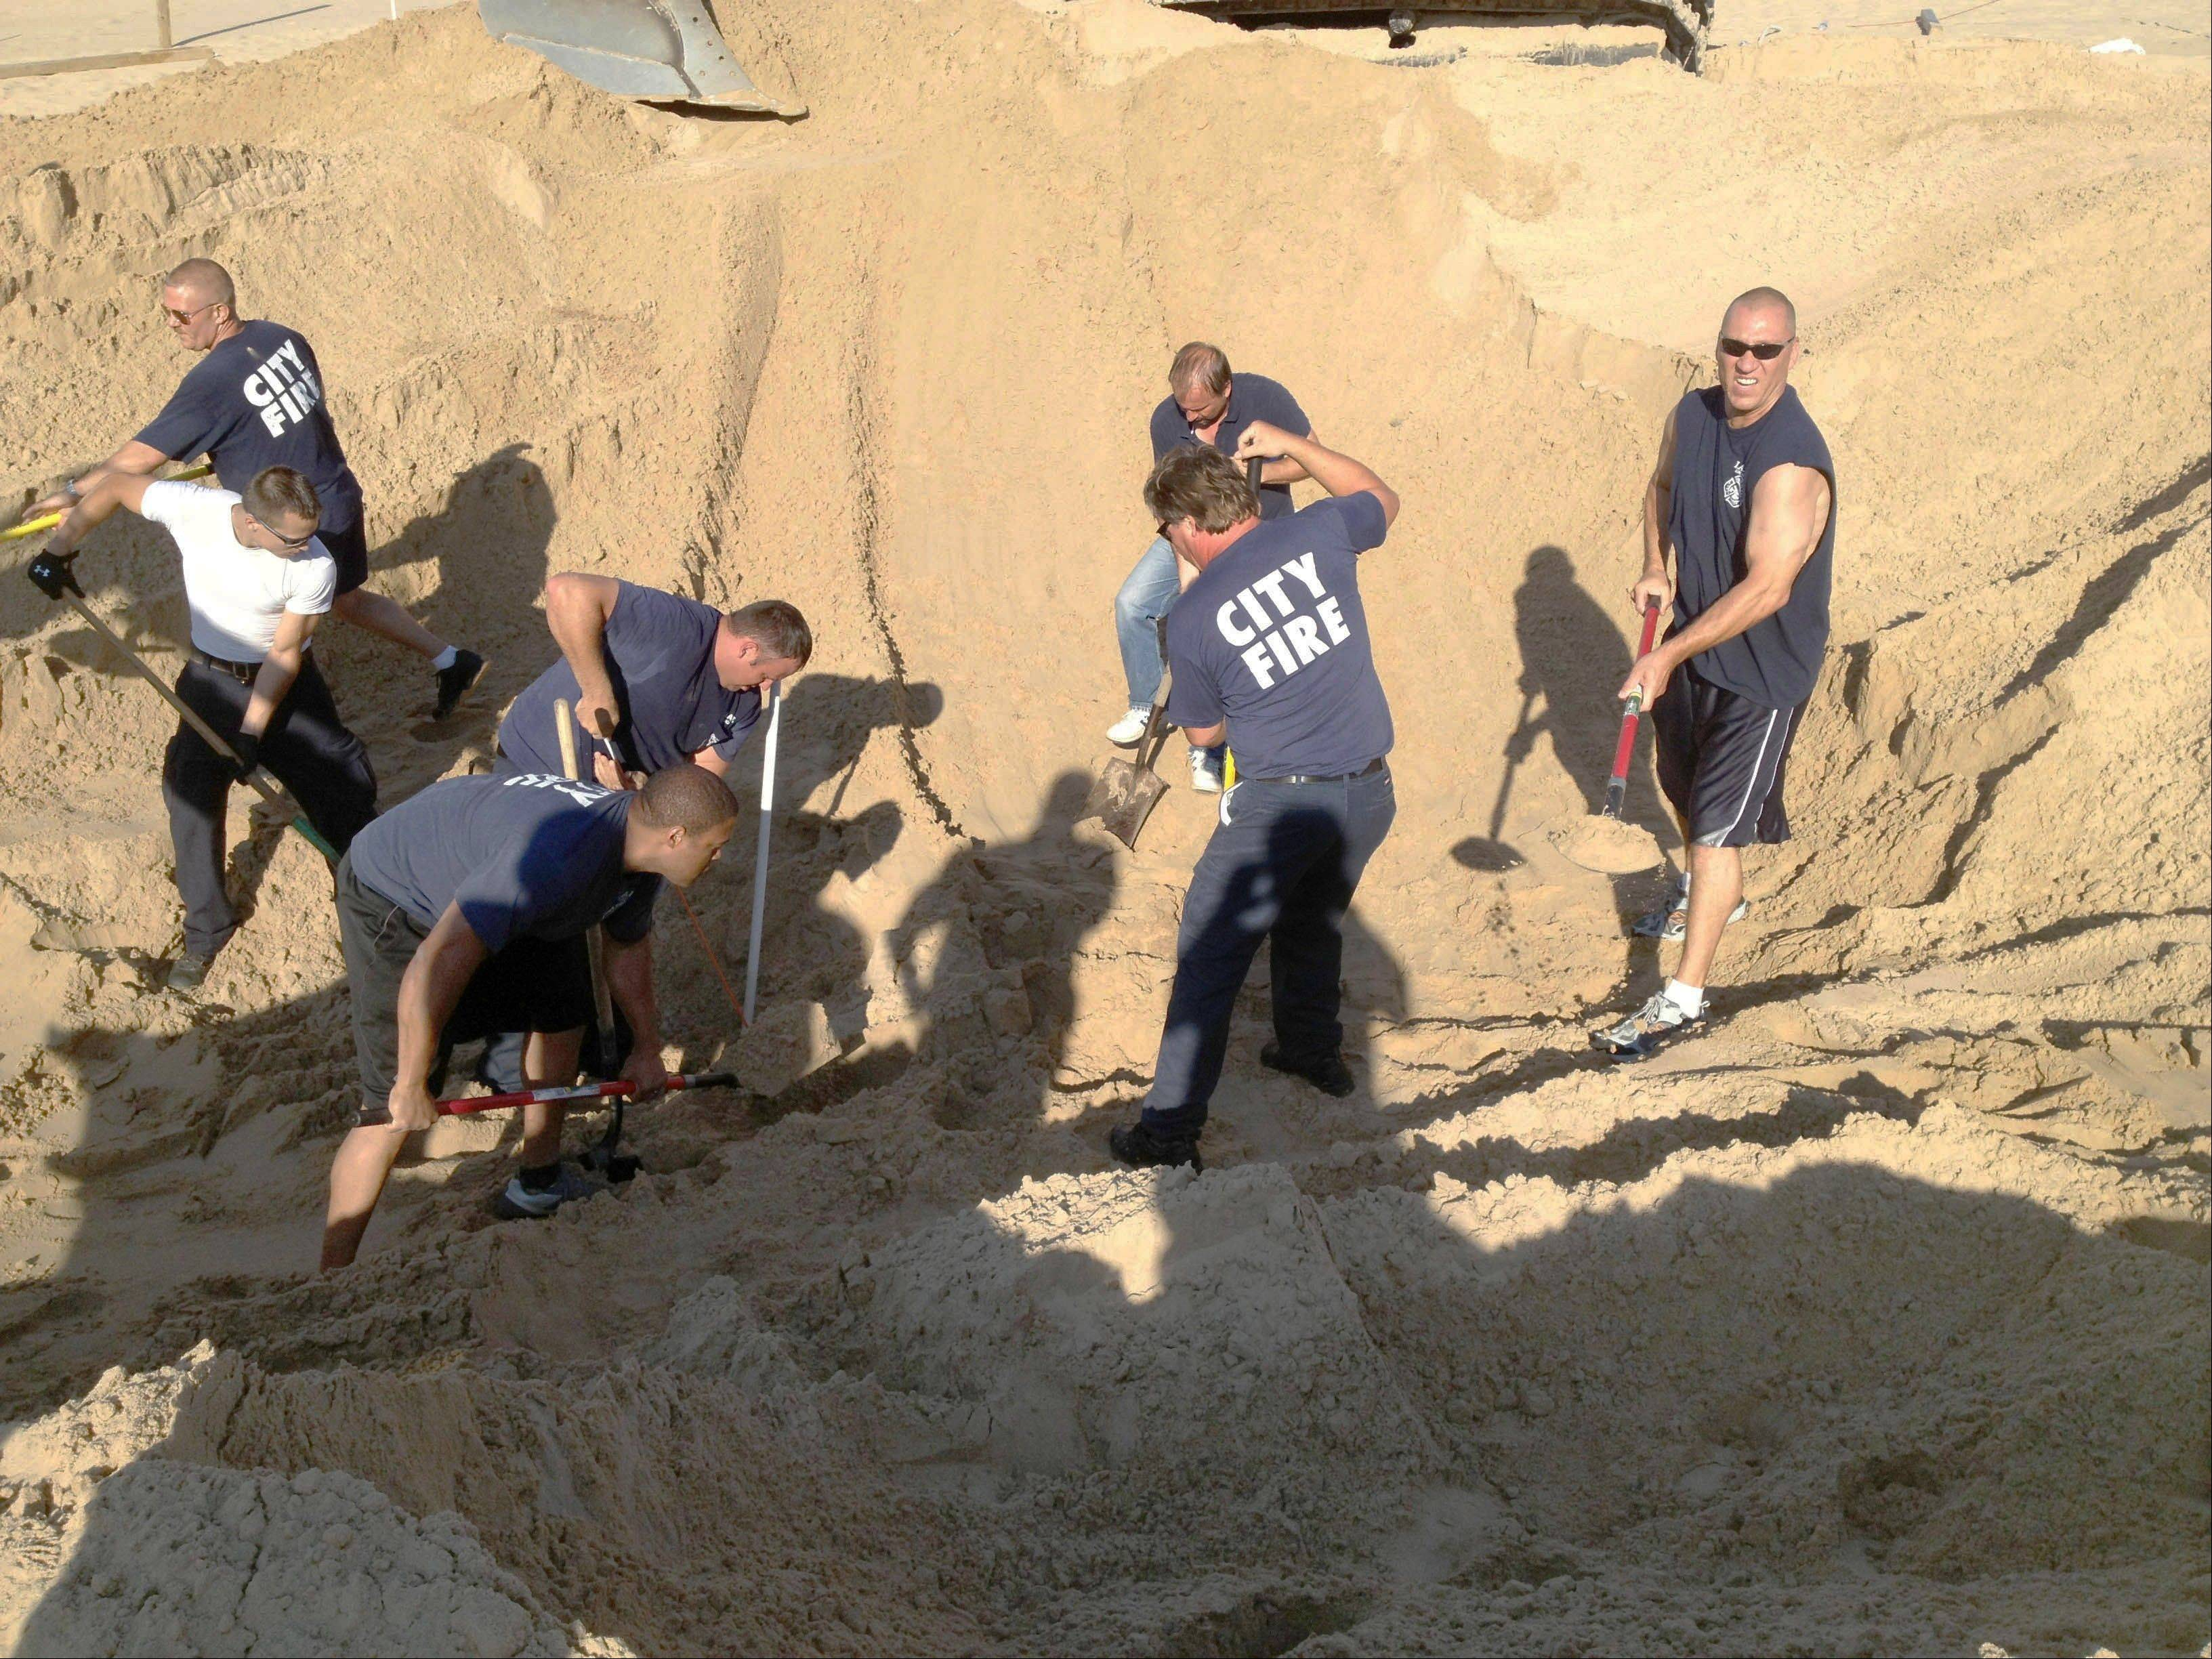 Michigan City police and firefighters dig with shovels to rescue Nathan Woessner, who was trapped for more than three hours under about 11 feet of sand at the Mount Baldy dune in Indiana.